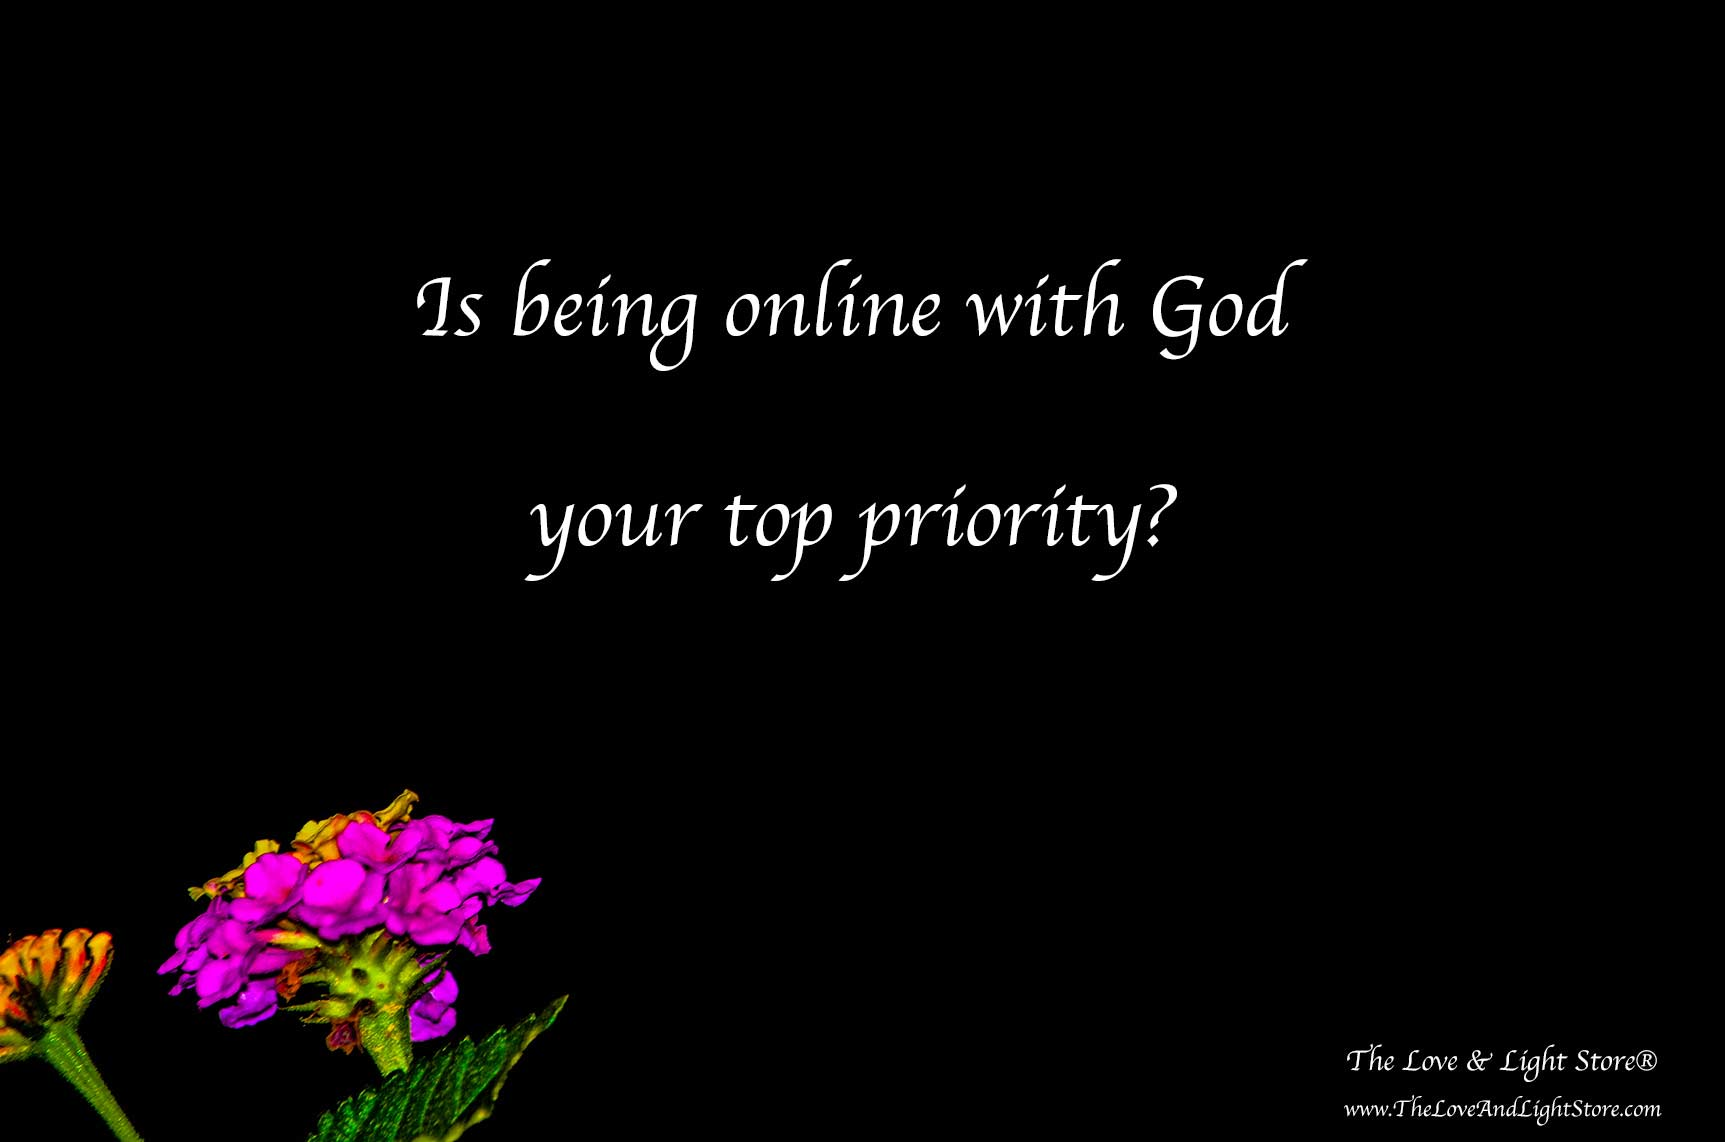 God is always there broadcasting guidance and wisdom. We only need to go online with God to be available to it that we can receive it.